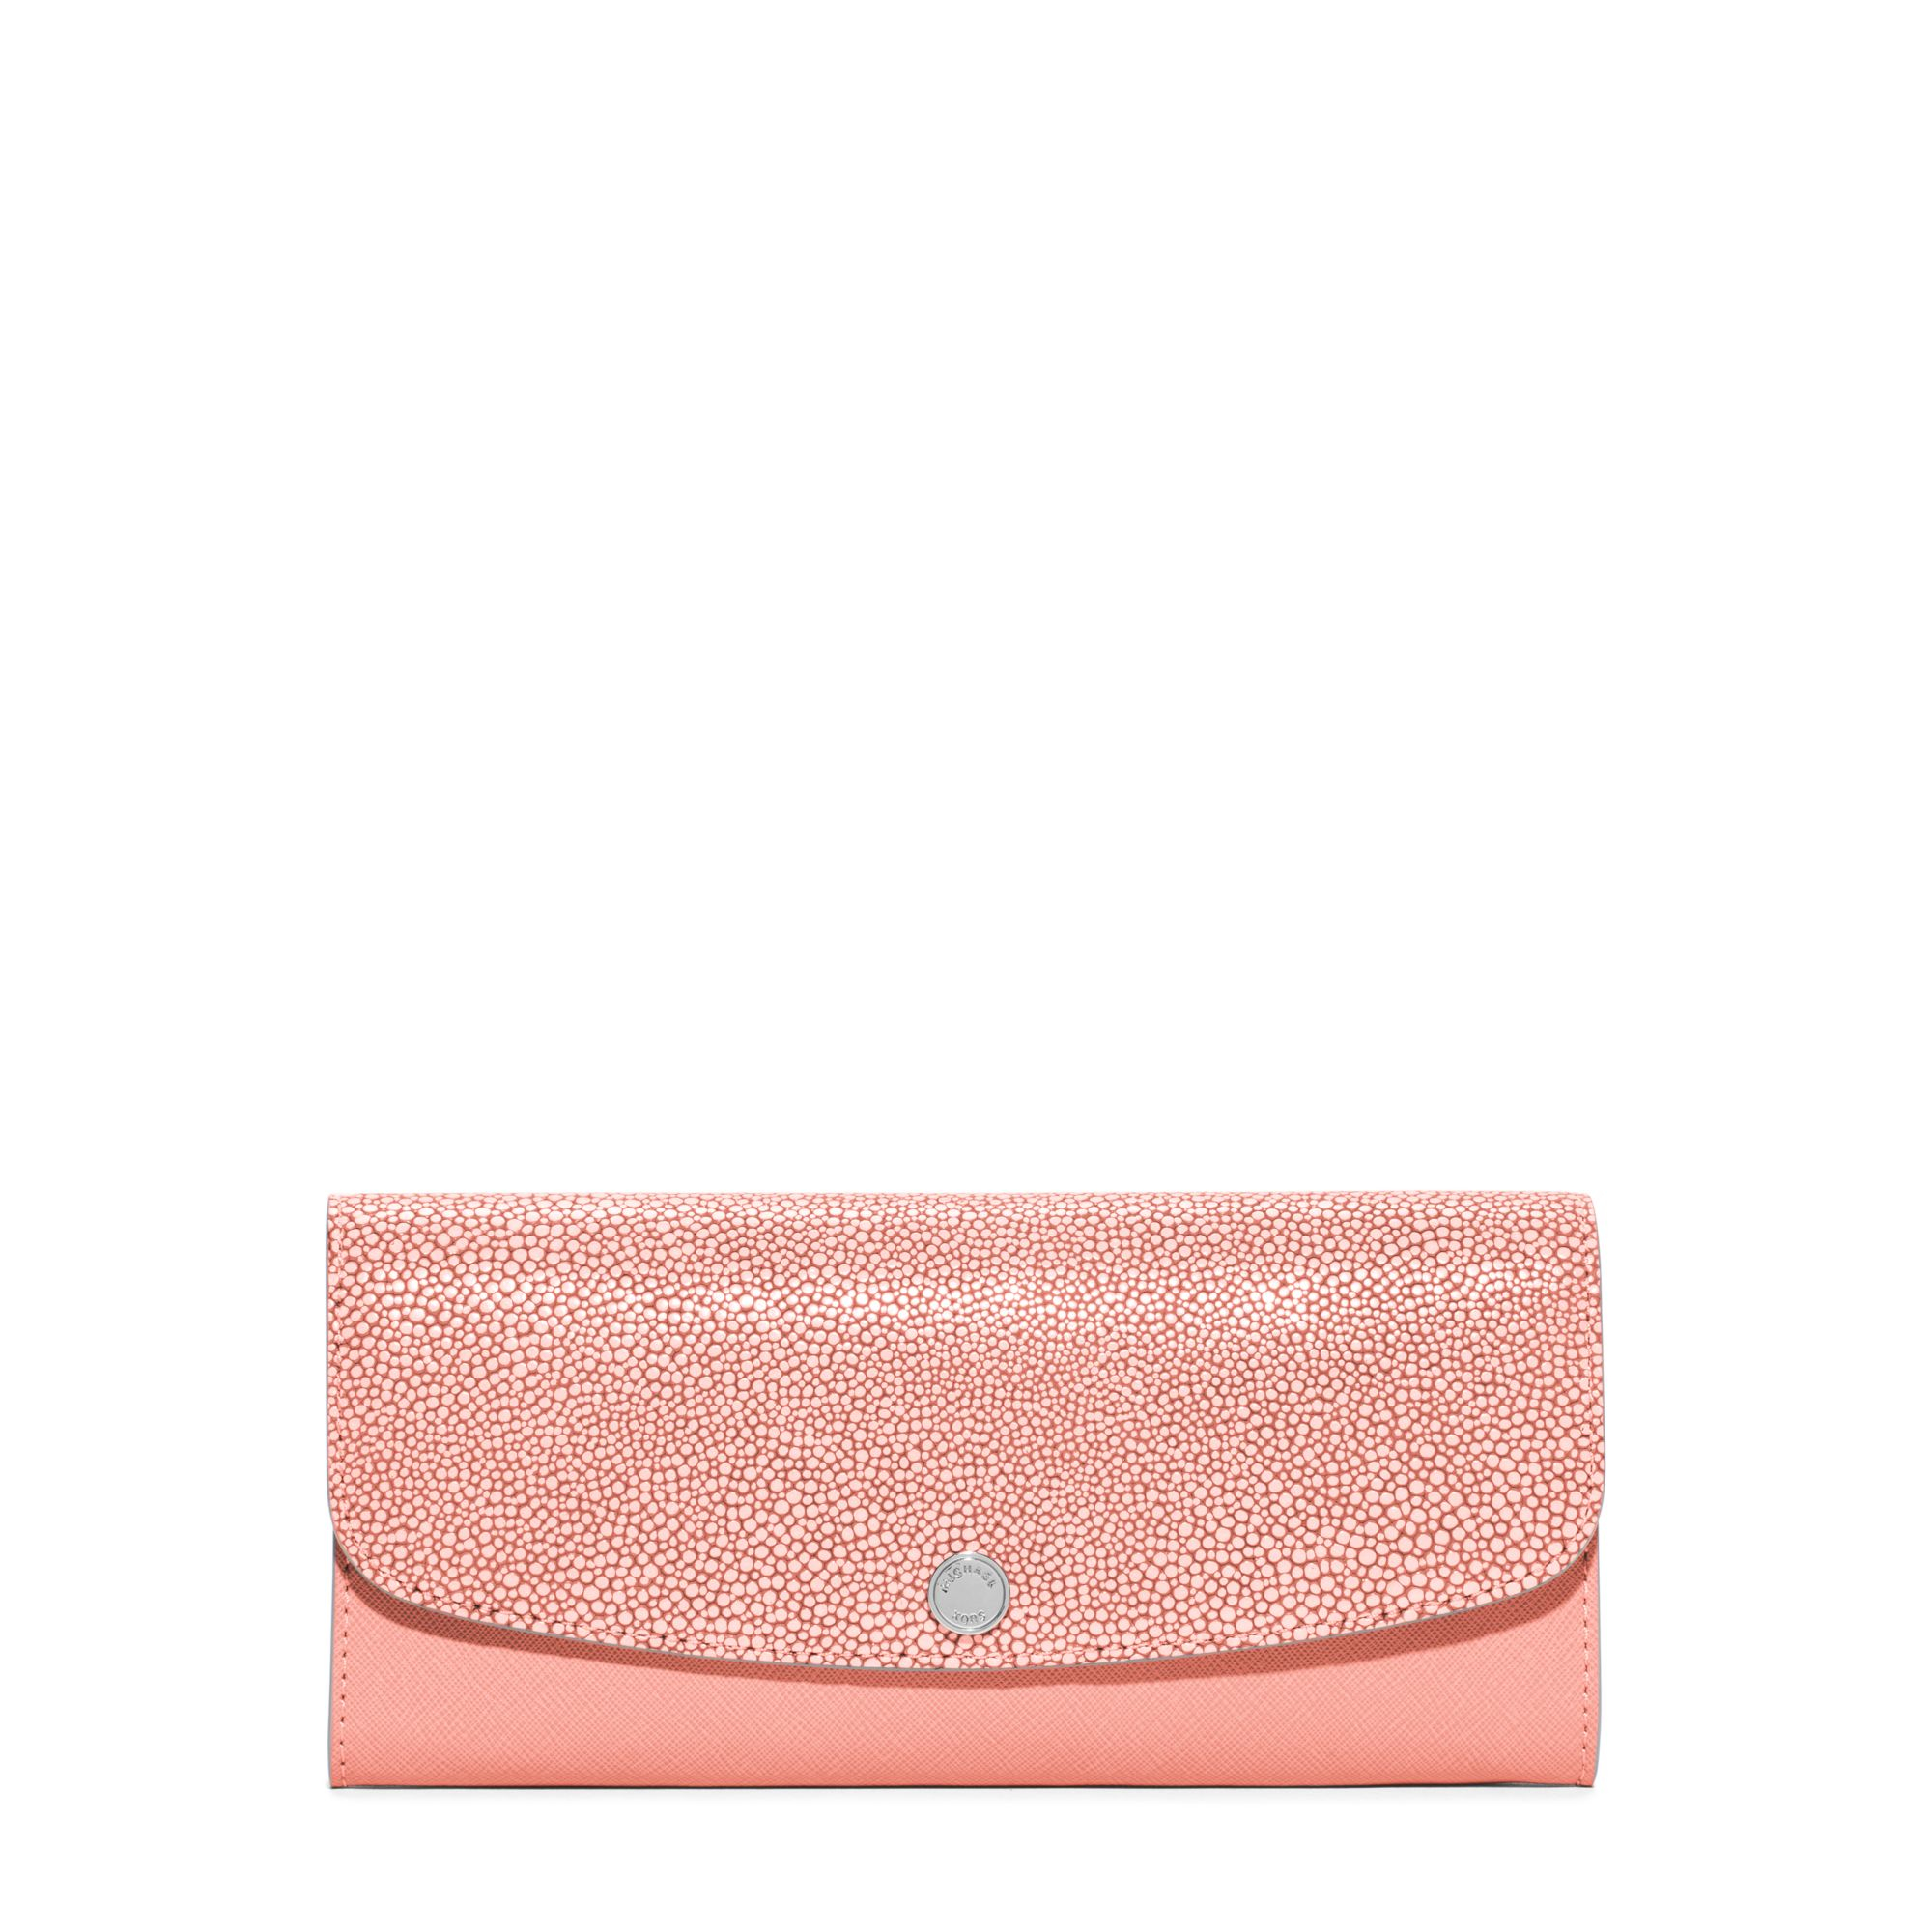 5f5d33678a90 Michael Kors Juliana Large 3-in-1 Saffiano Leather Wallet in Pink - Lyst